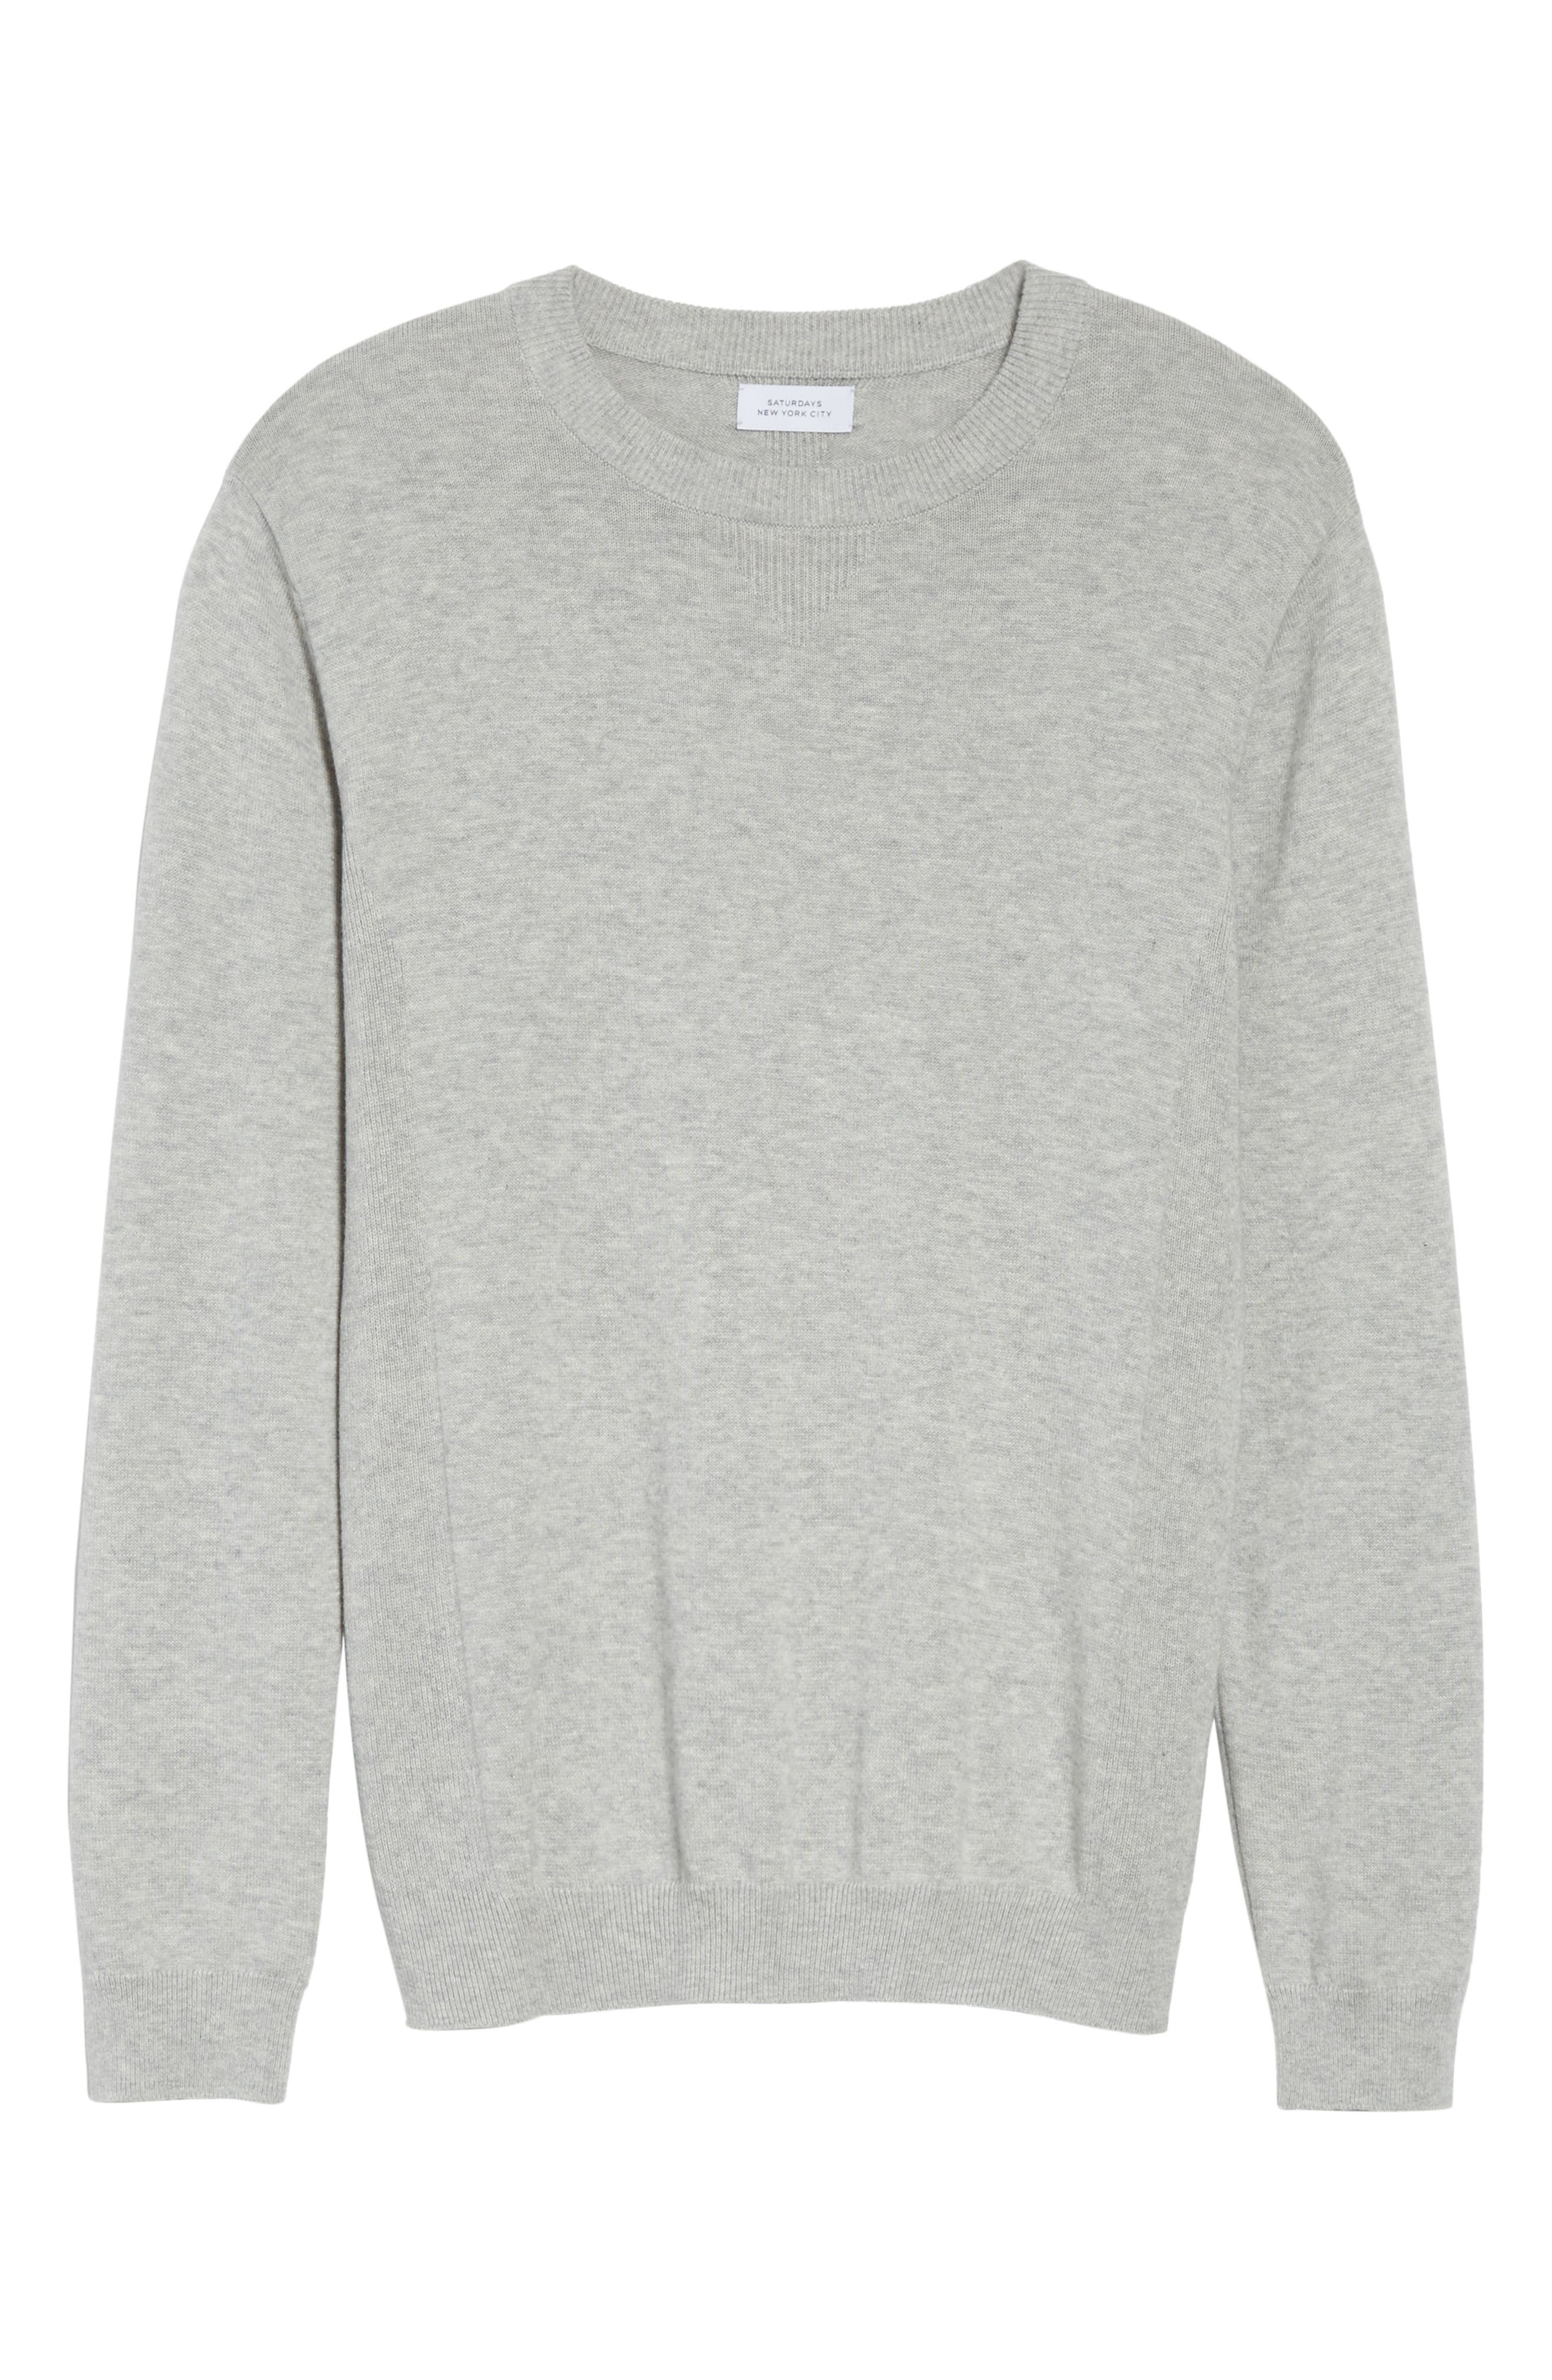 Merino Wool & Cashmere Pullover,                             Alternate thumbnail 6, color,                             035